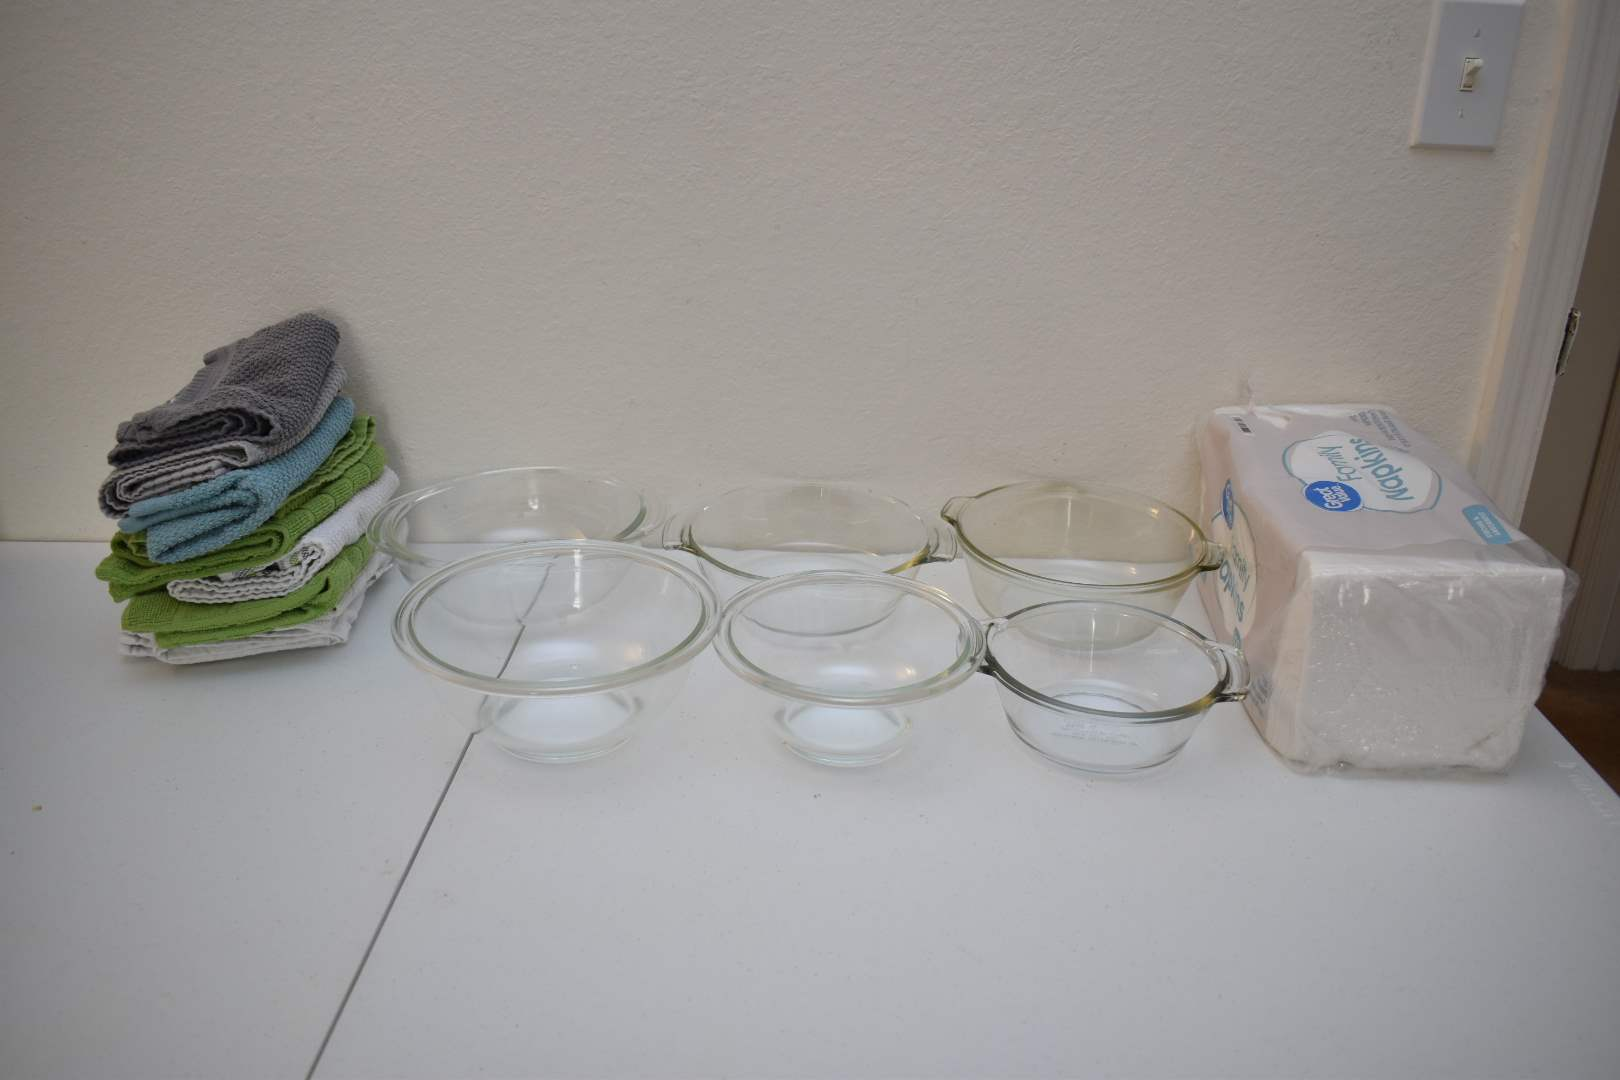 Pyrex and Fire King Bowls, Napkins, Kitchen Towels